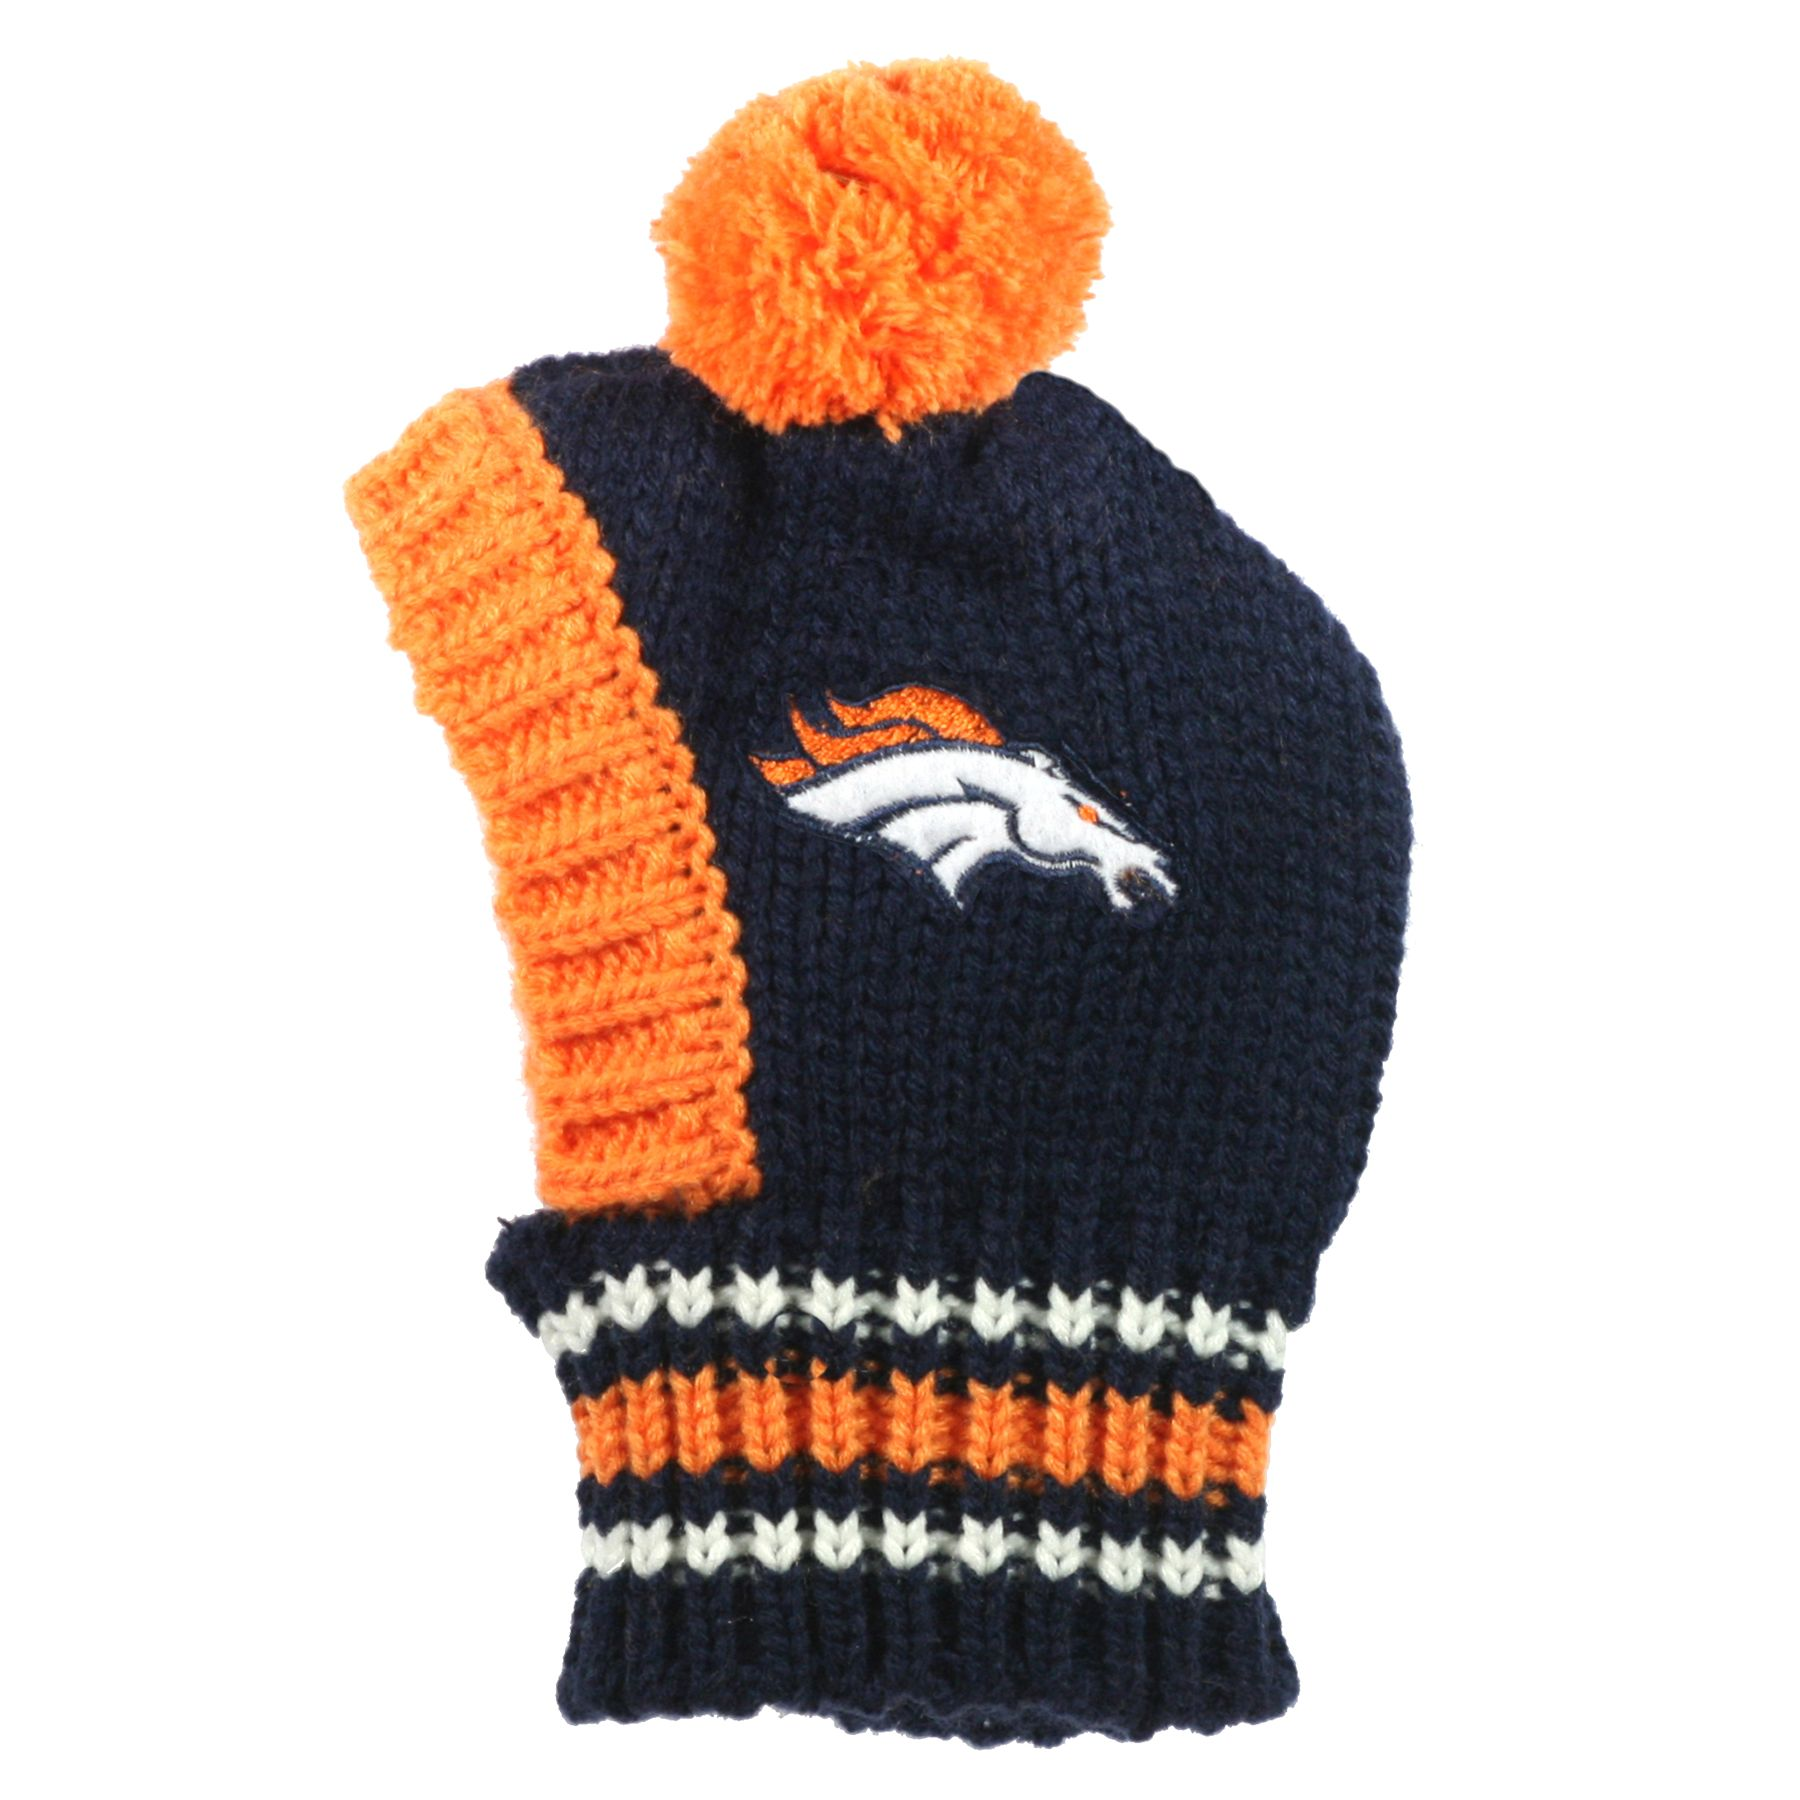 Denver Broncos NFL Knit Hat size: Large, Hip Doggie 5230393